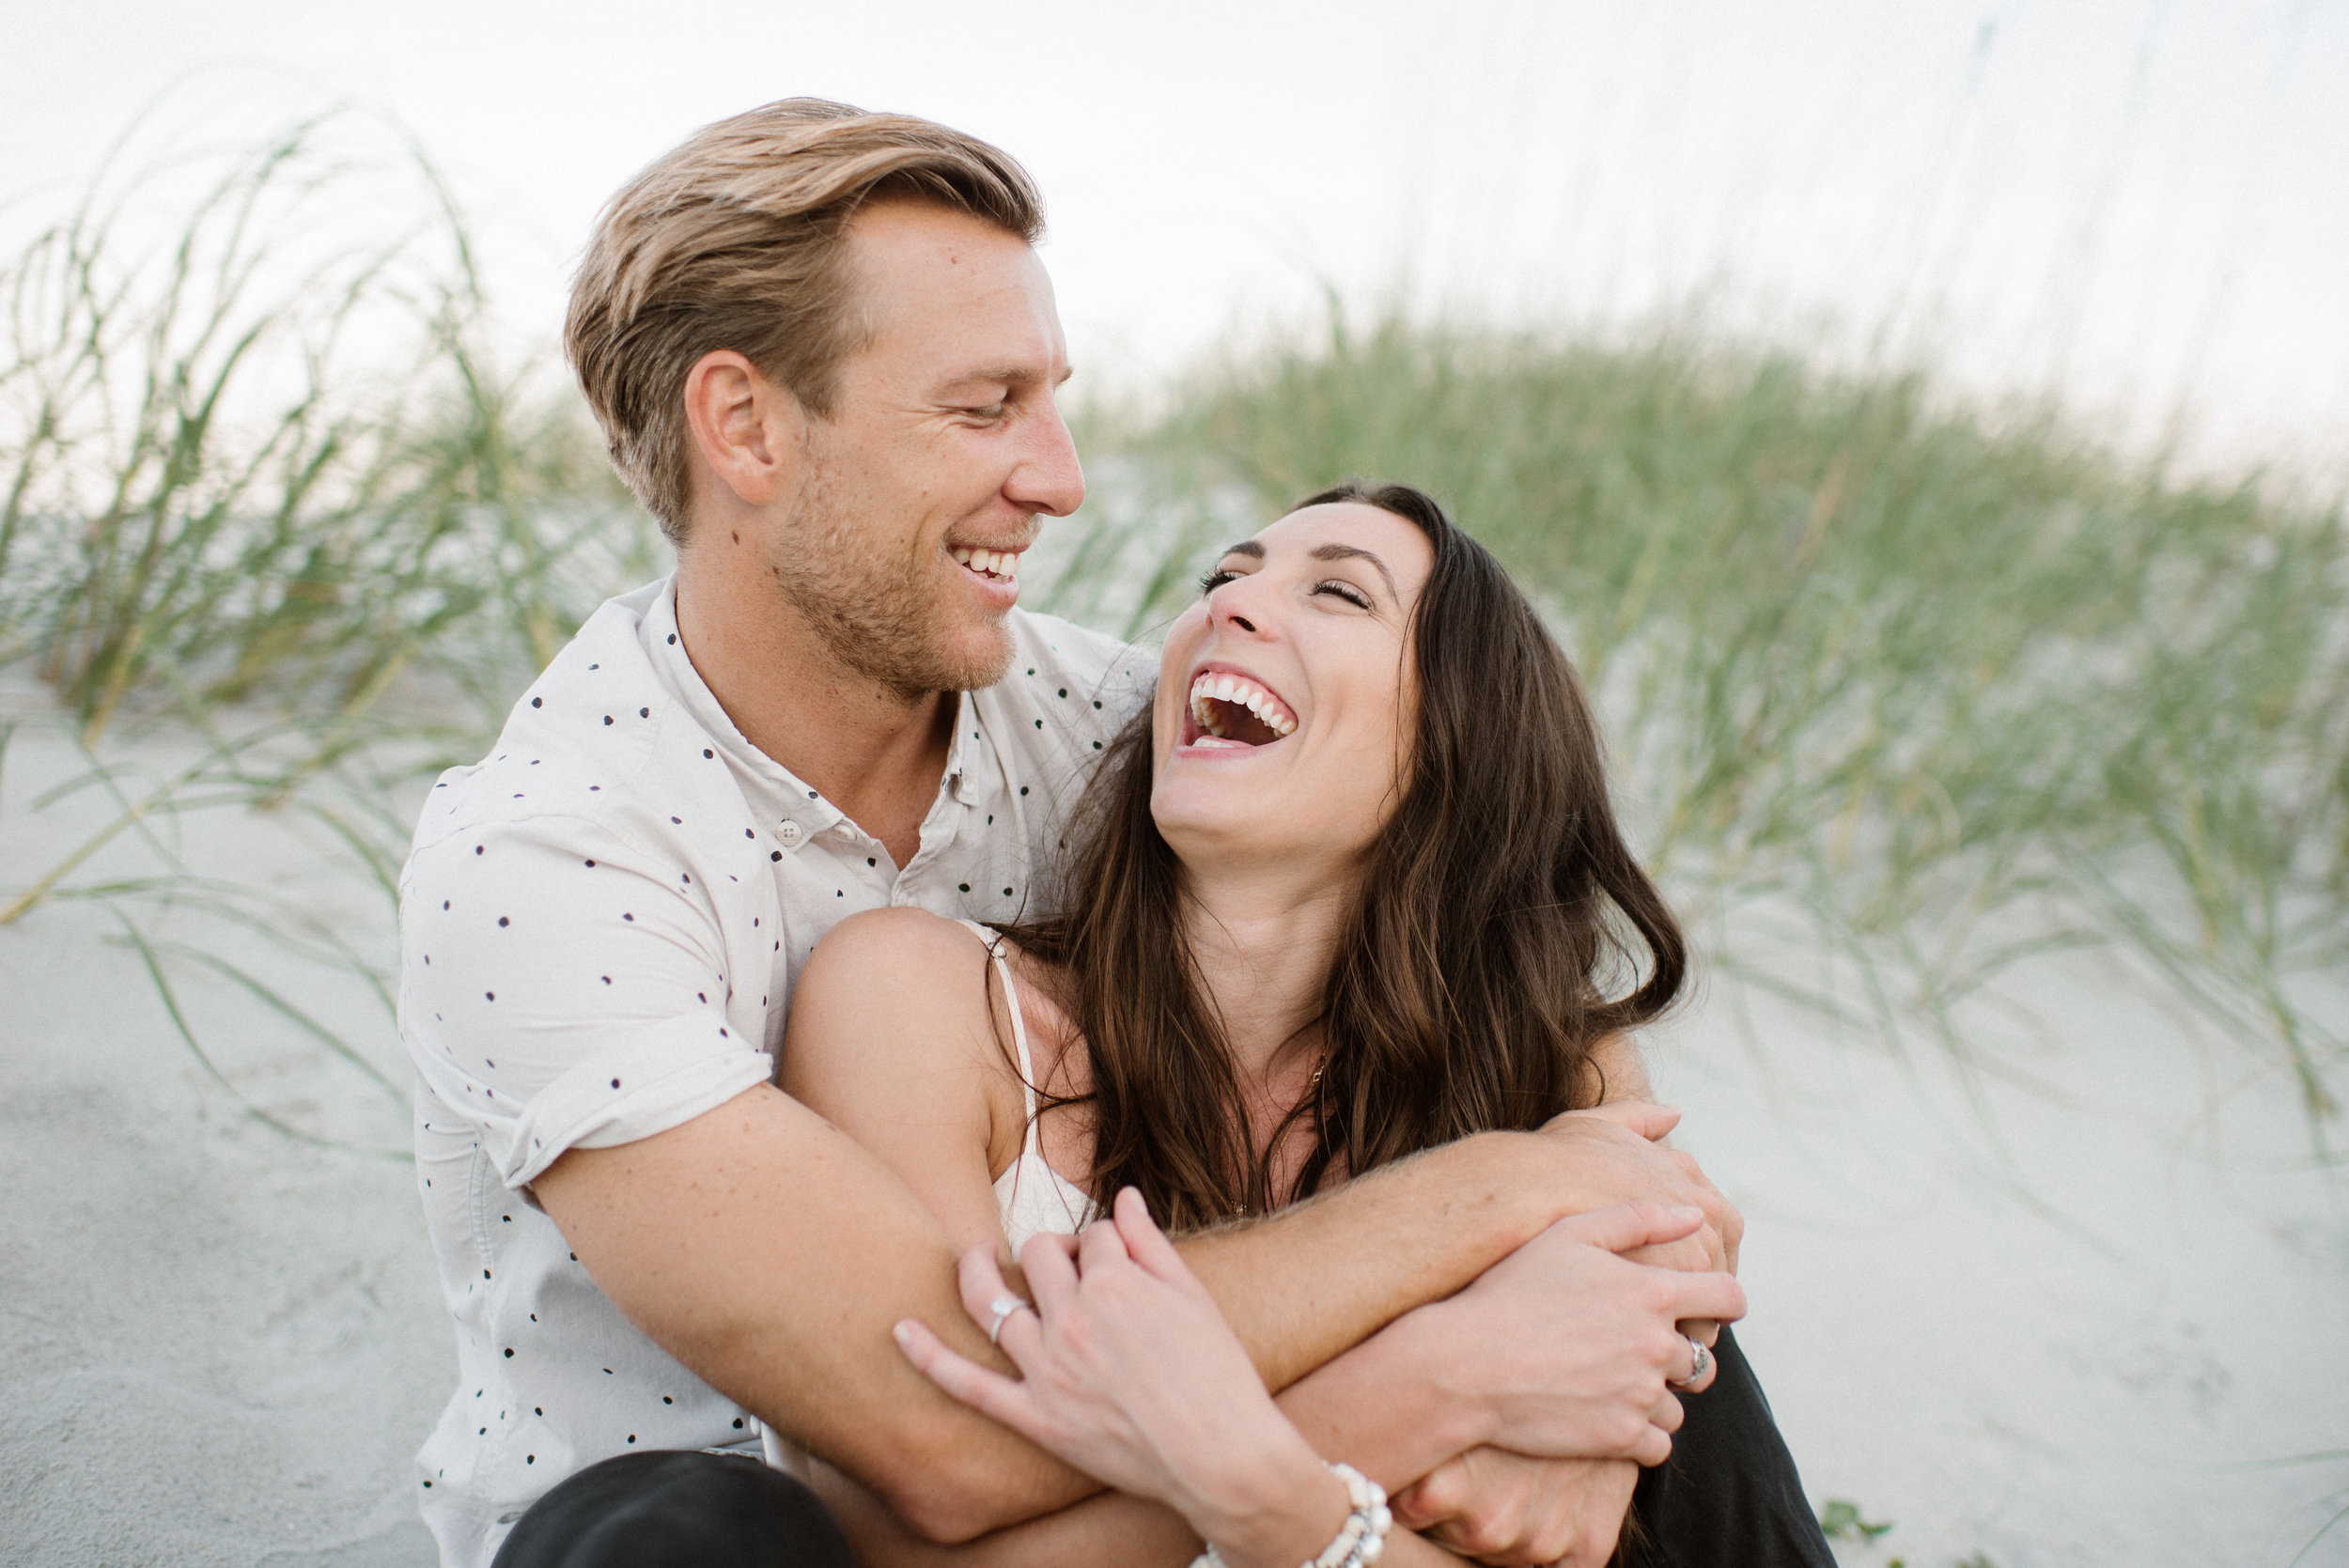 atlantic-beach-engagement-photos-heather-and-cody-78.jpg